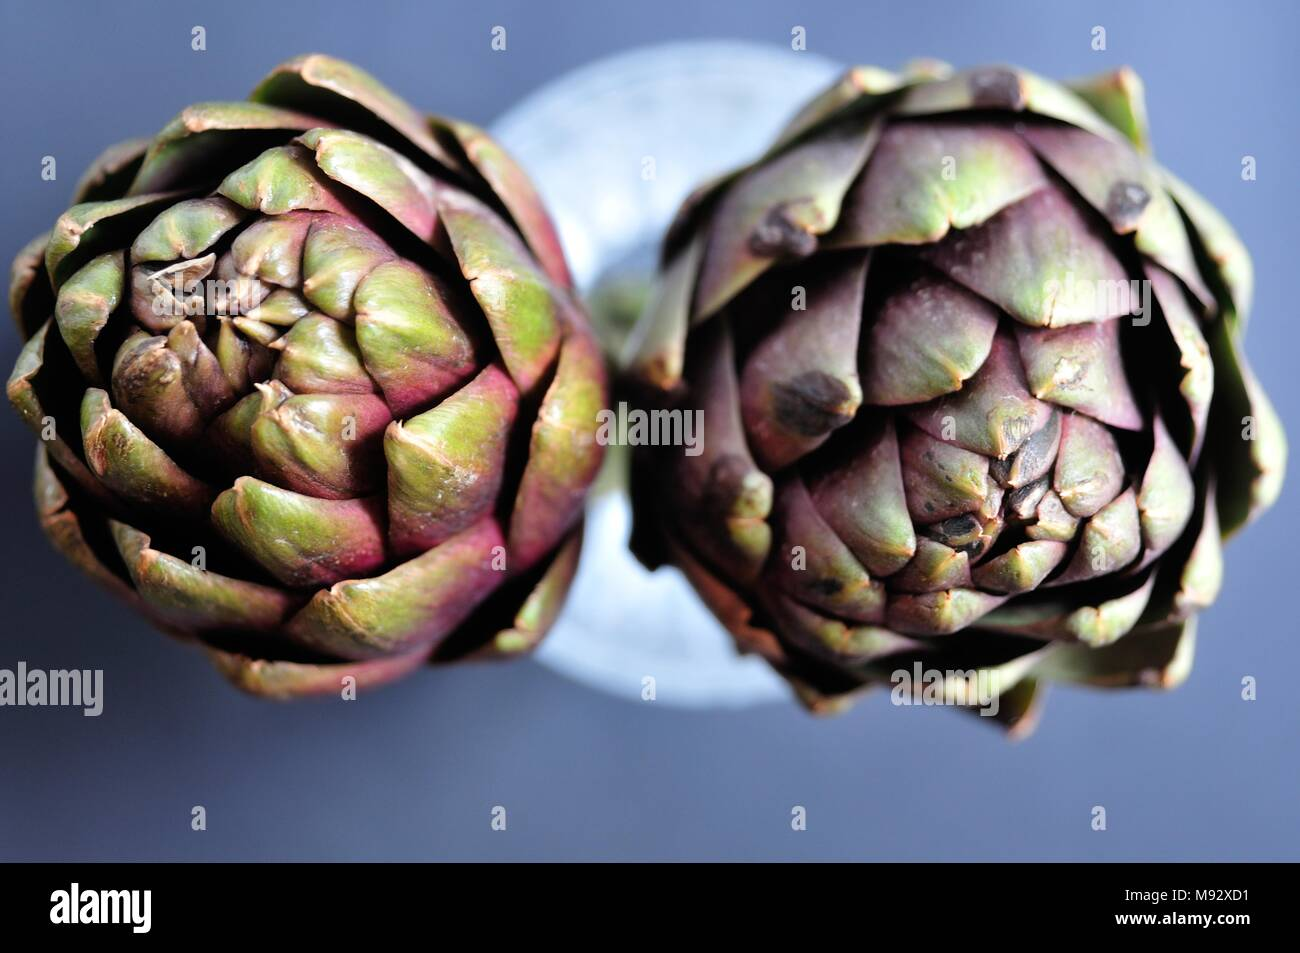 Two green organic artichokes on gray background, top view. Healthy dieting and antioxidant vegetables. - Stock Image